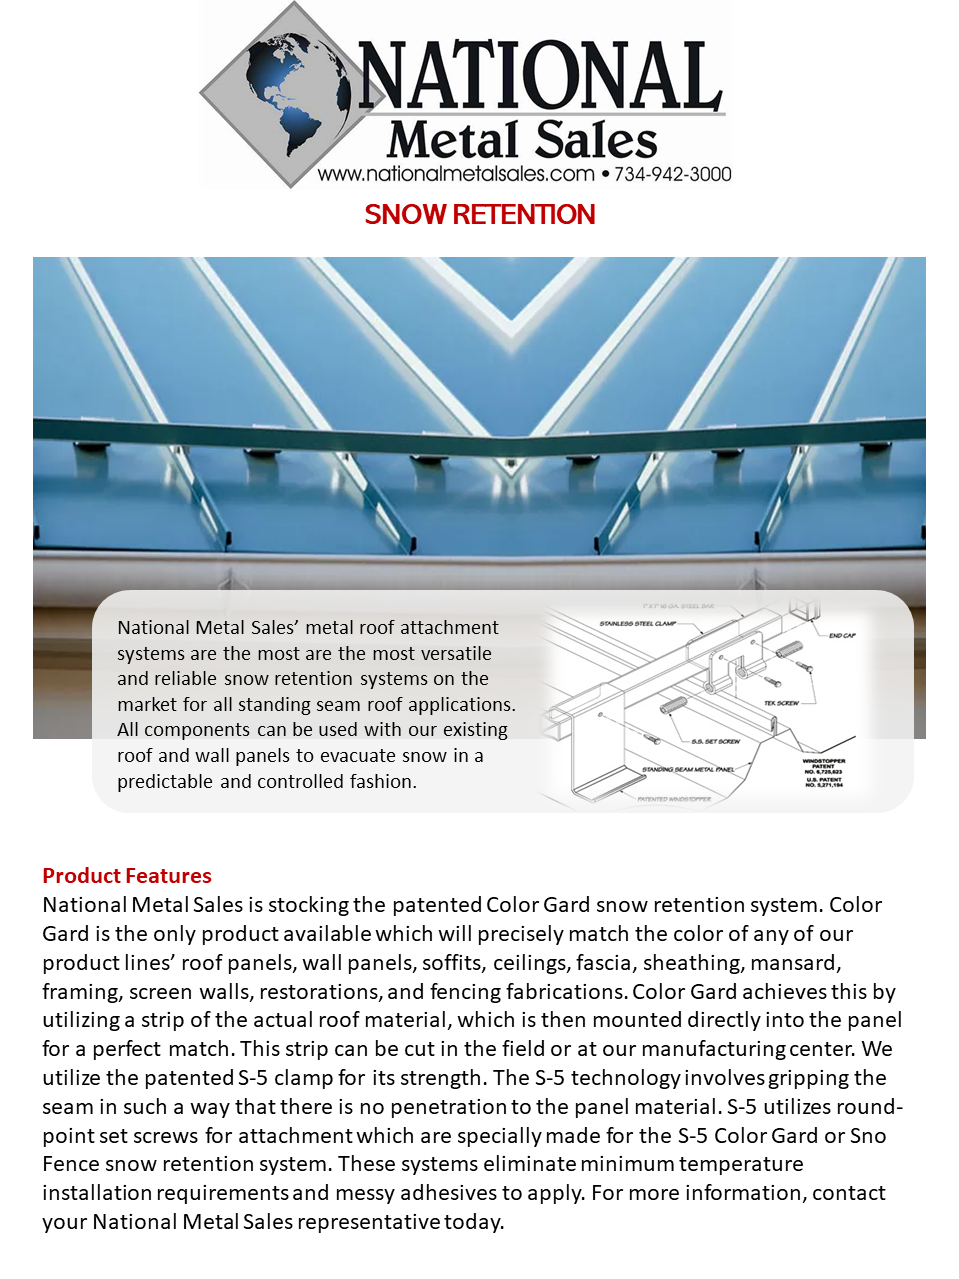 New Eco-Friendly & Durable Metal Roofing and Siding